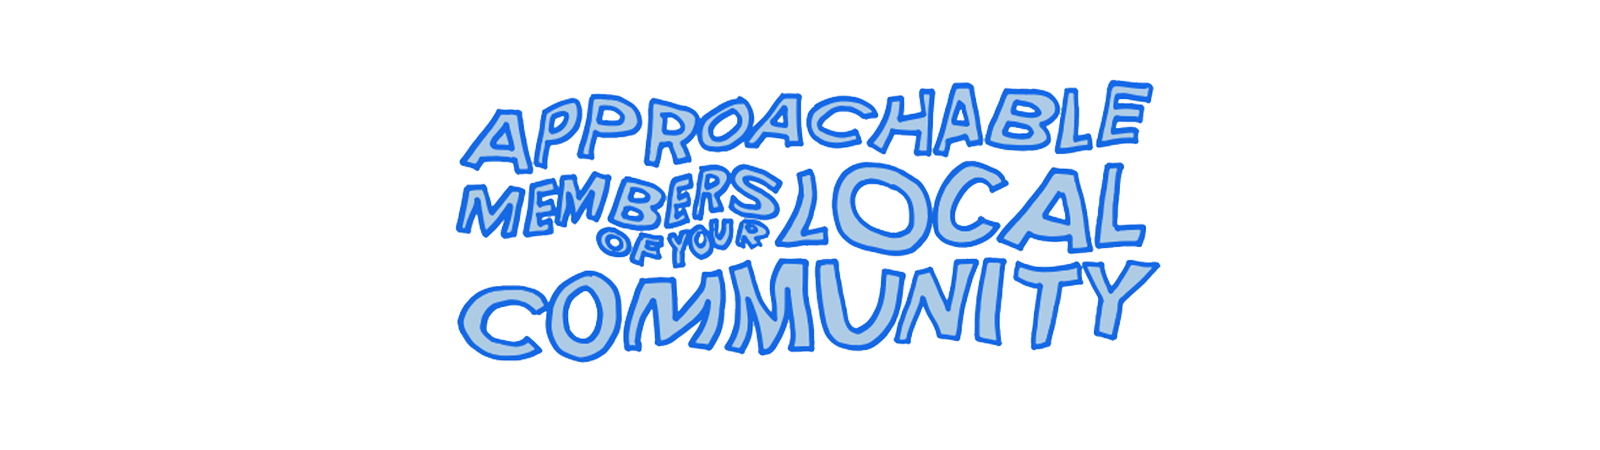 Approachable Members Of Your Local Community